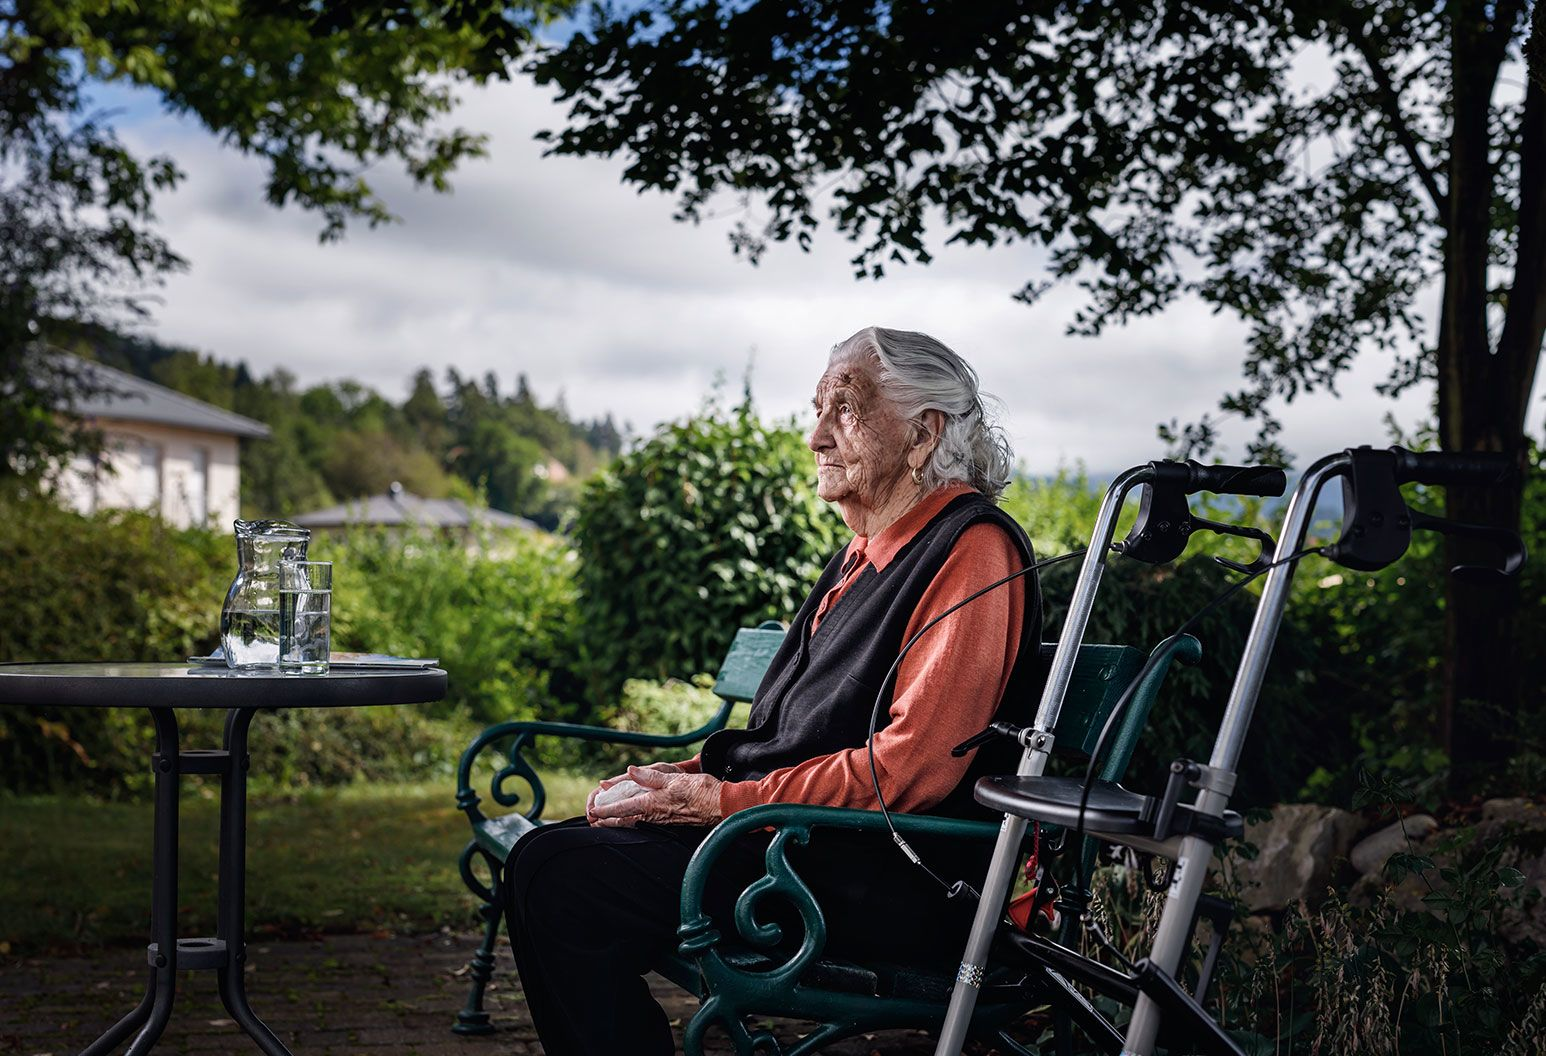 An elderly woman sits outside on a bench outside. She is wearing a orange shirt with a black vest over it and looks off into the distance. Beside her is her walker parked right next to he bench and on her other side is a table with a jug filled with water.